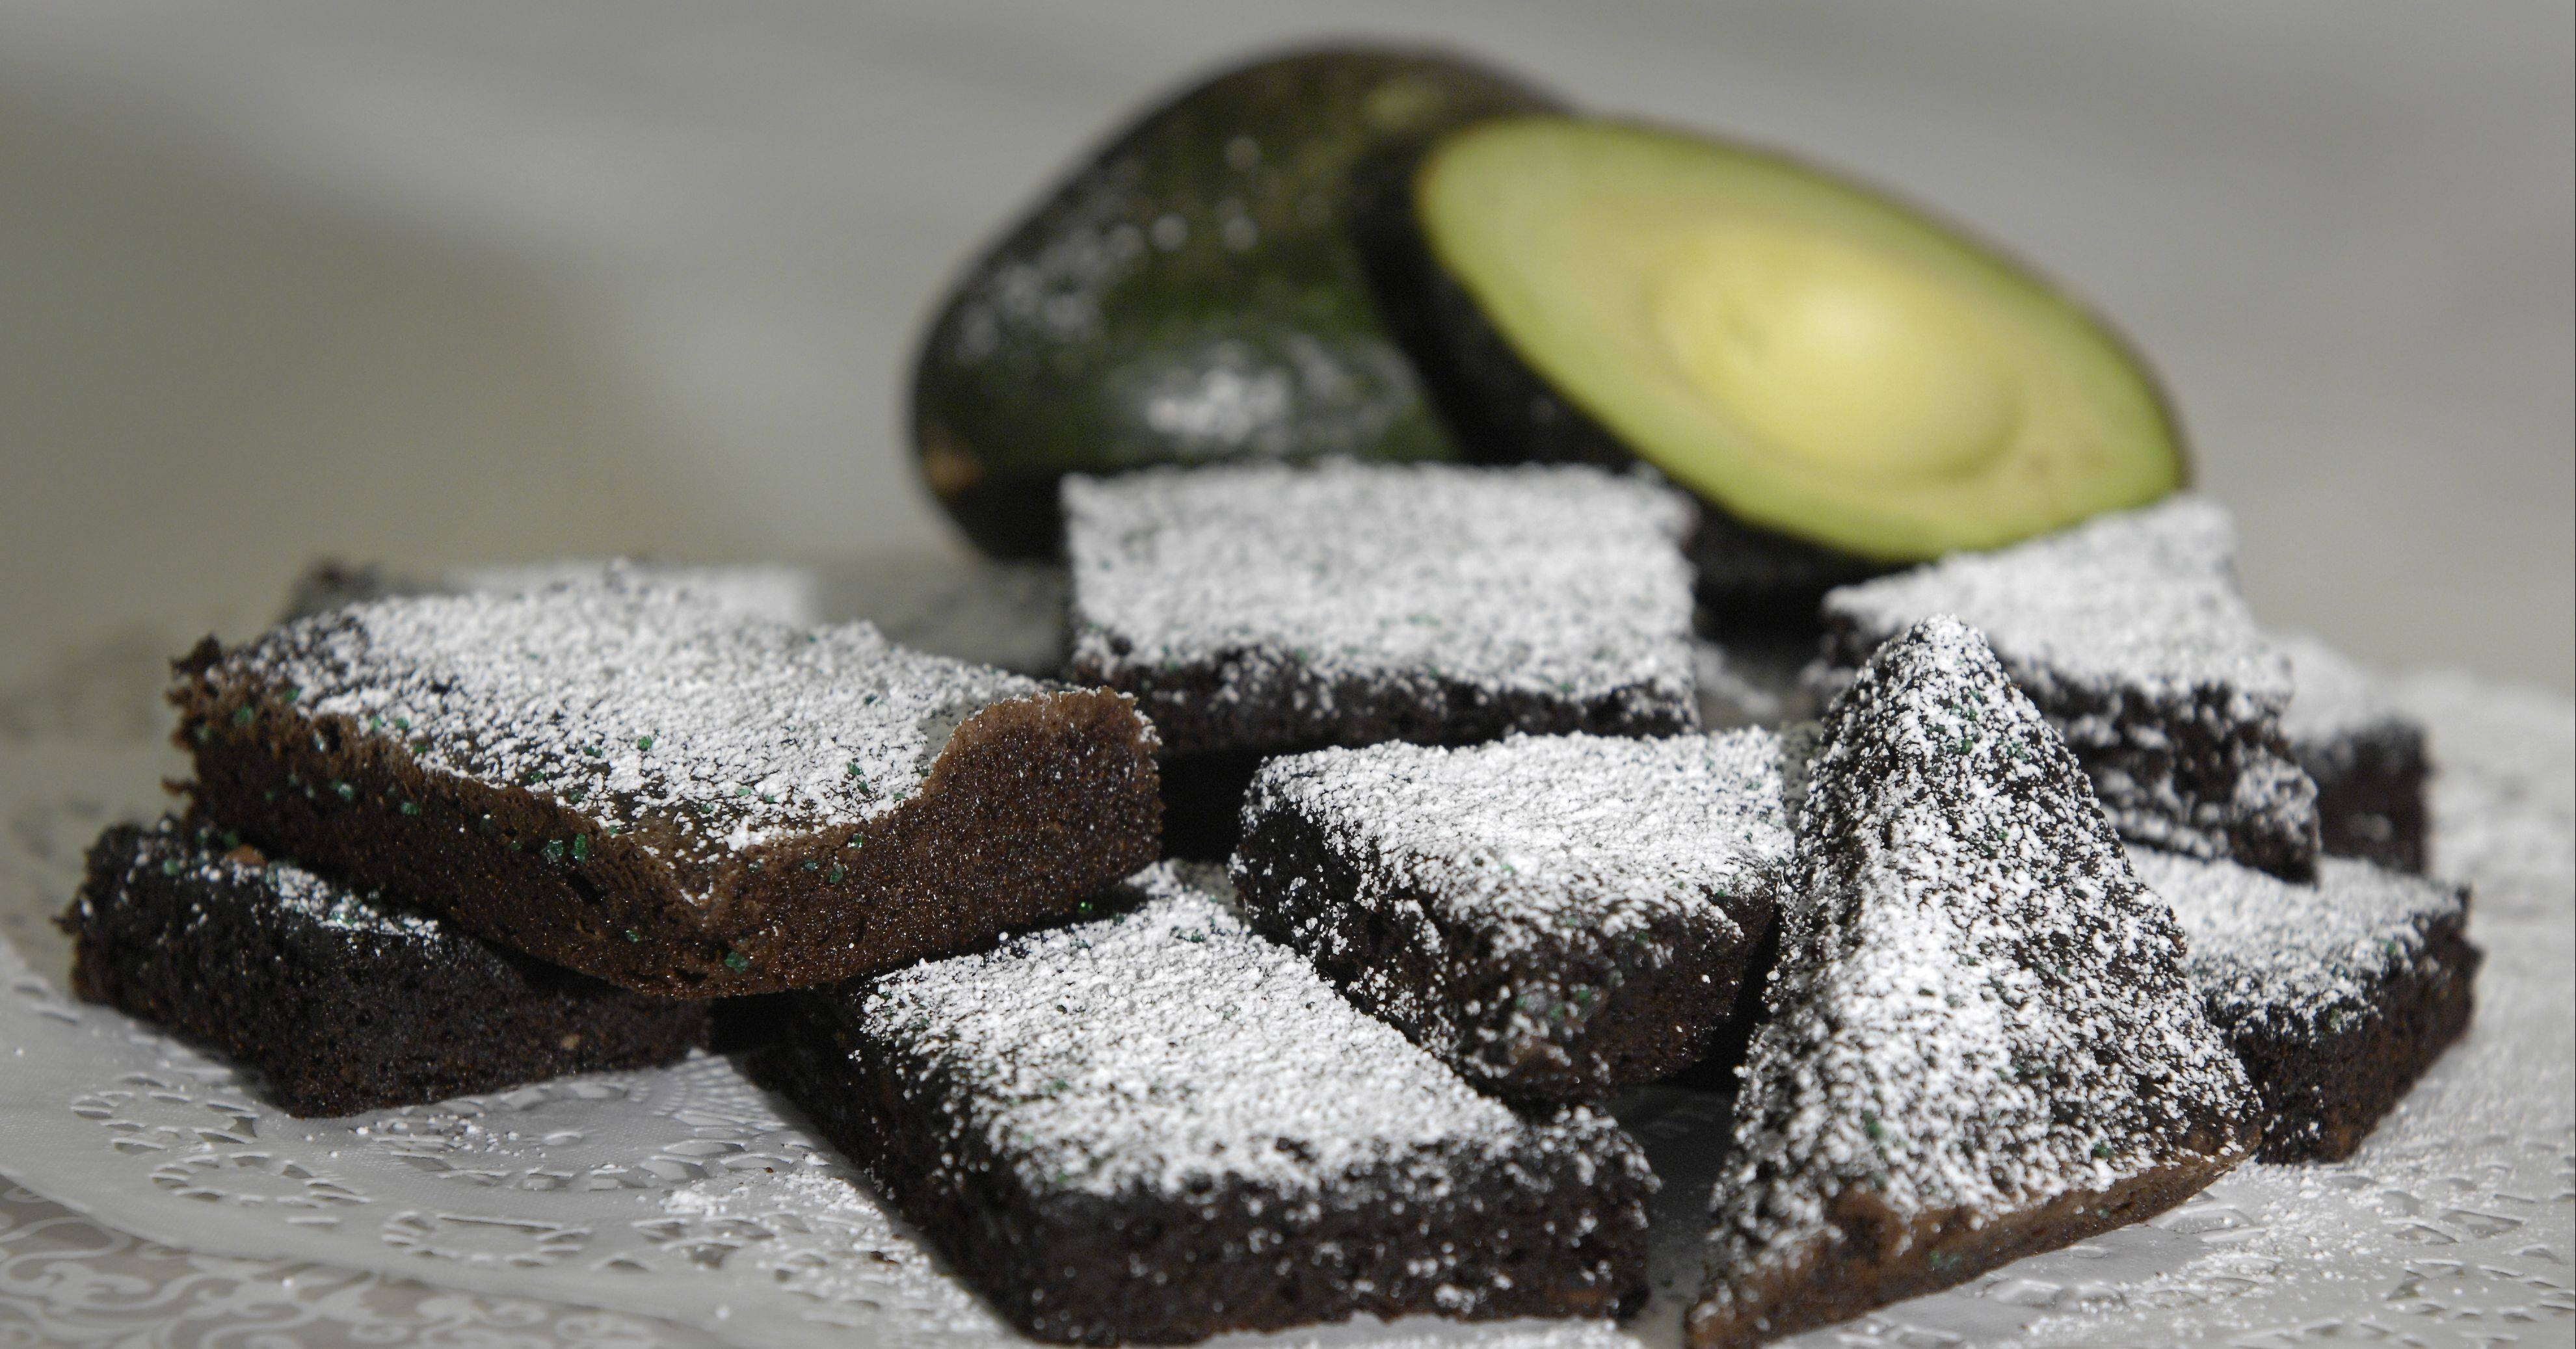 Avocado replaces butter in guiltless brownies